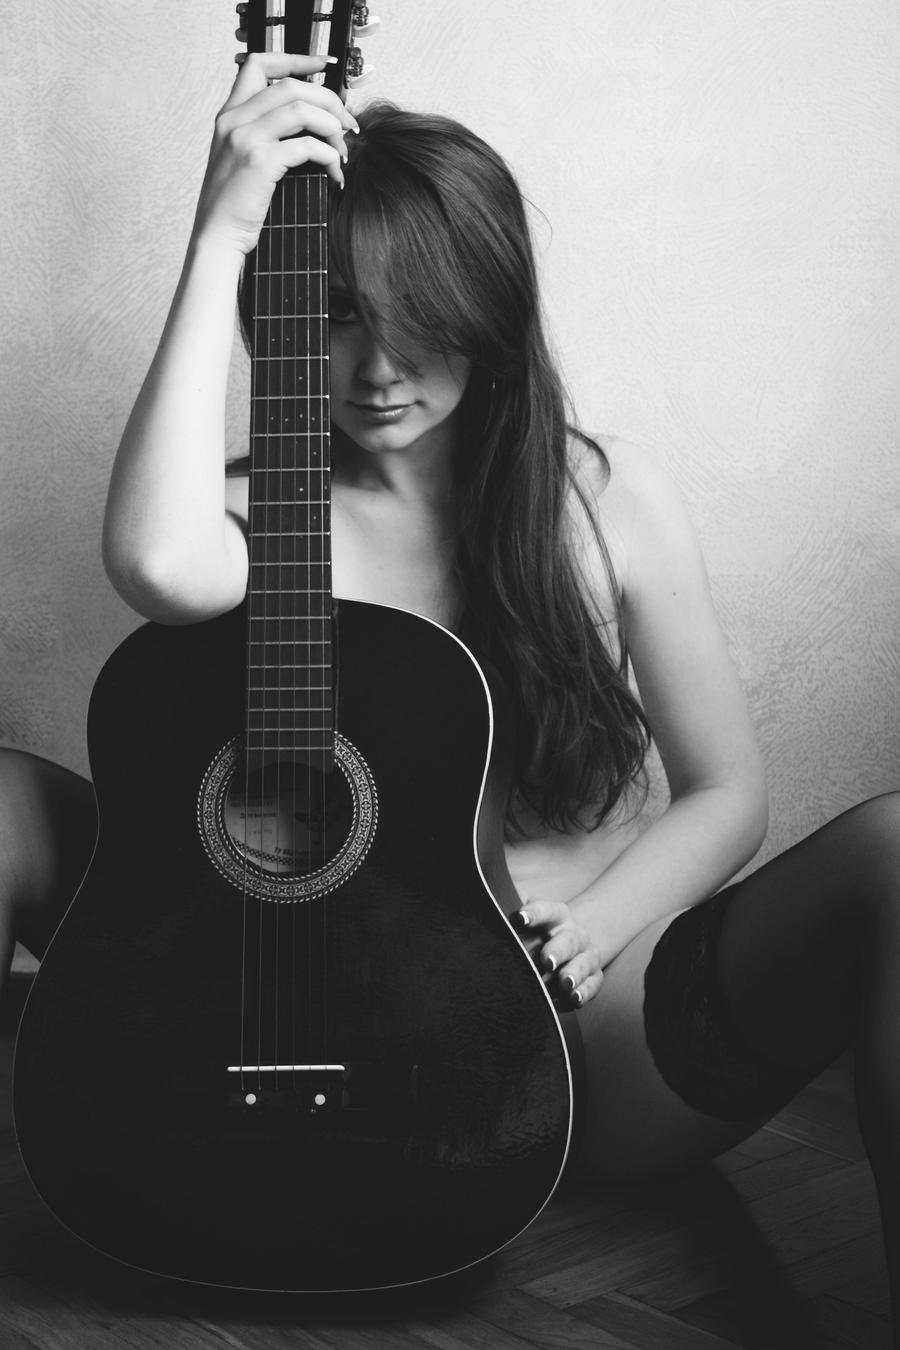 Hot chick plays guitar naked 4